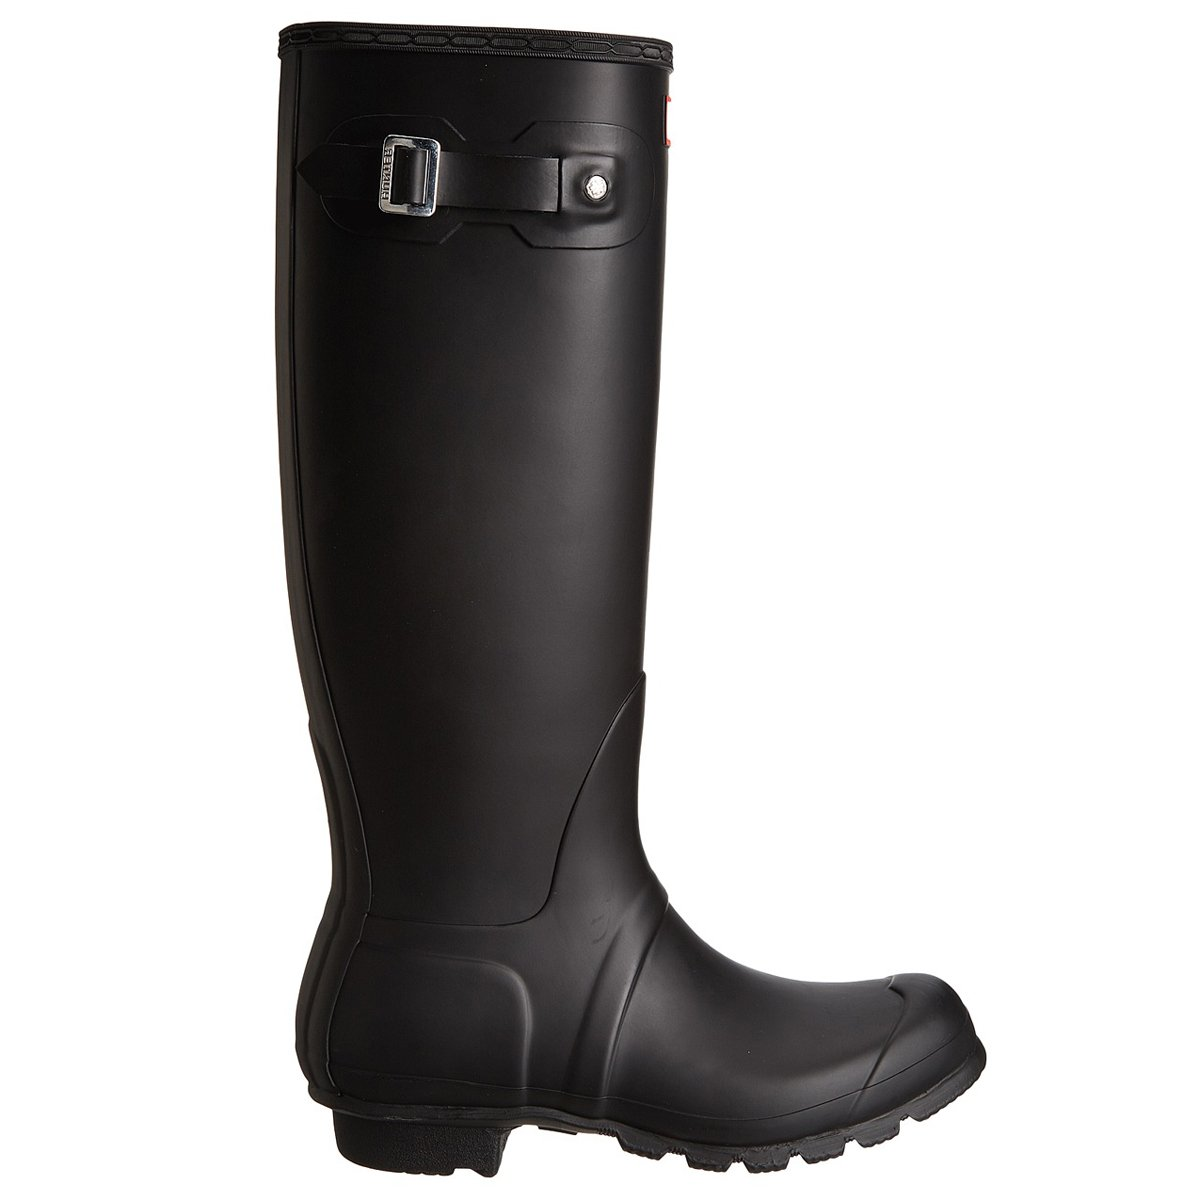 Hunter Women's Original Tall Wellington Boots, Black - 7 B(M) US